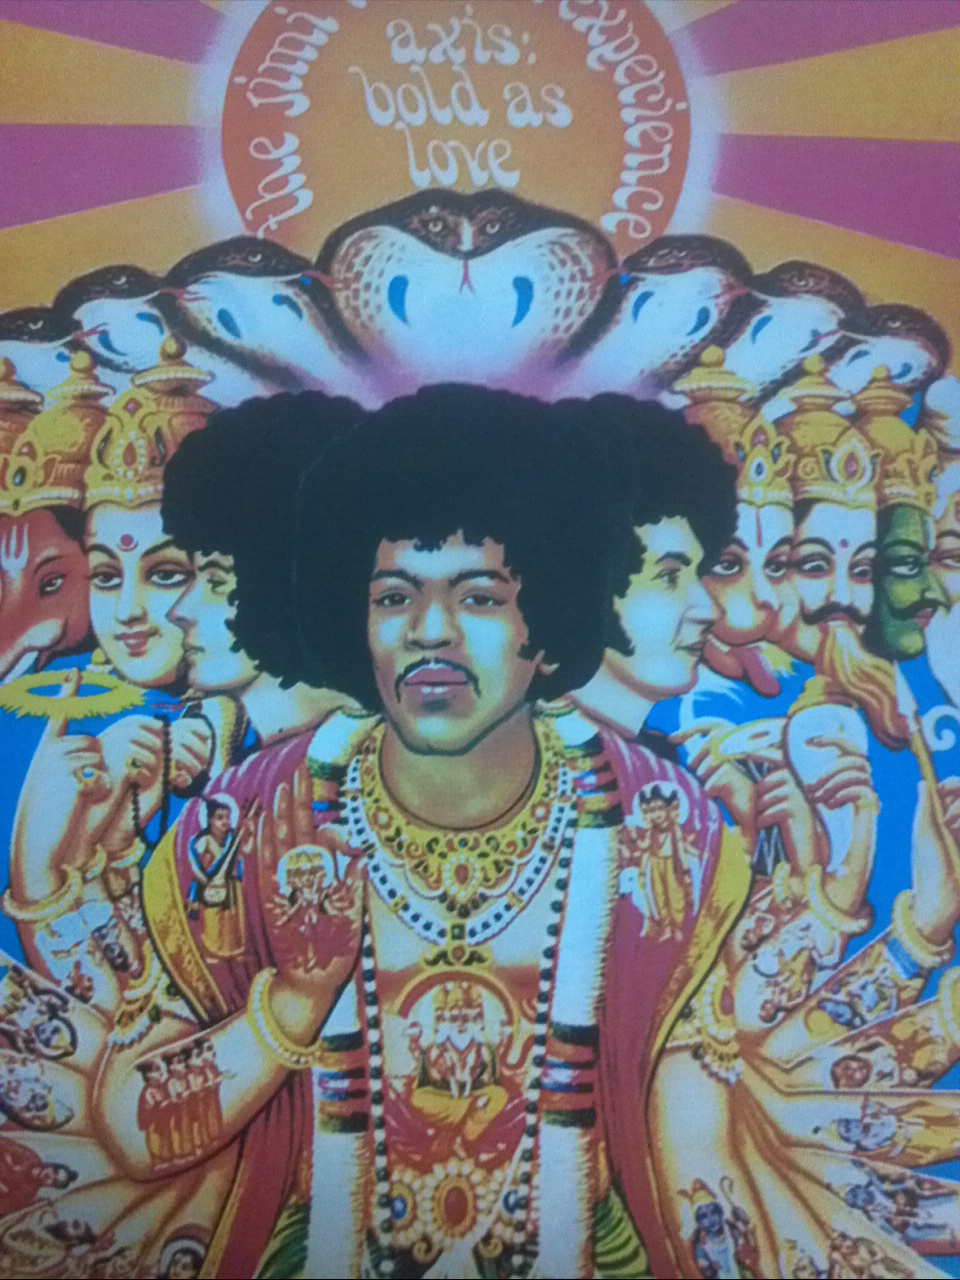 The jimi hendrix experience ;axis bold as love